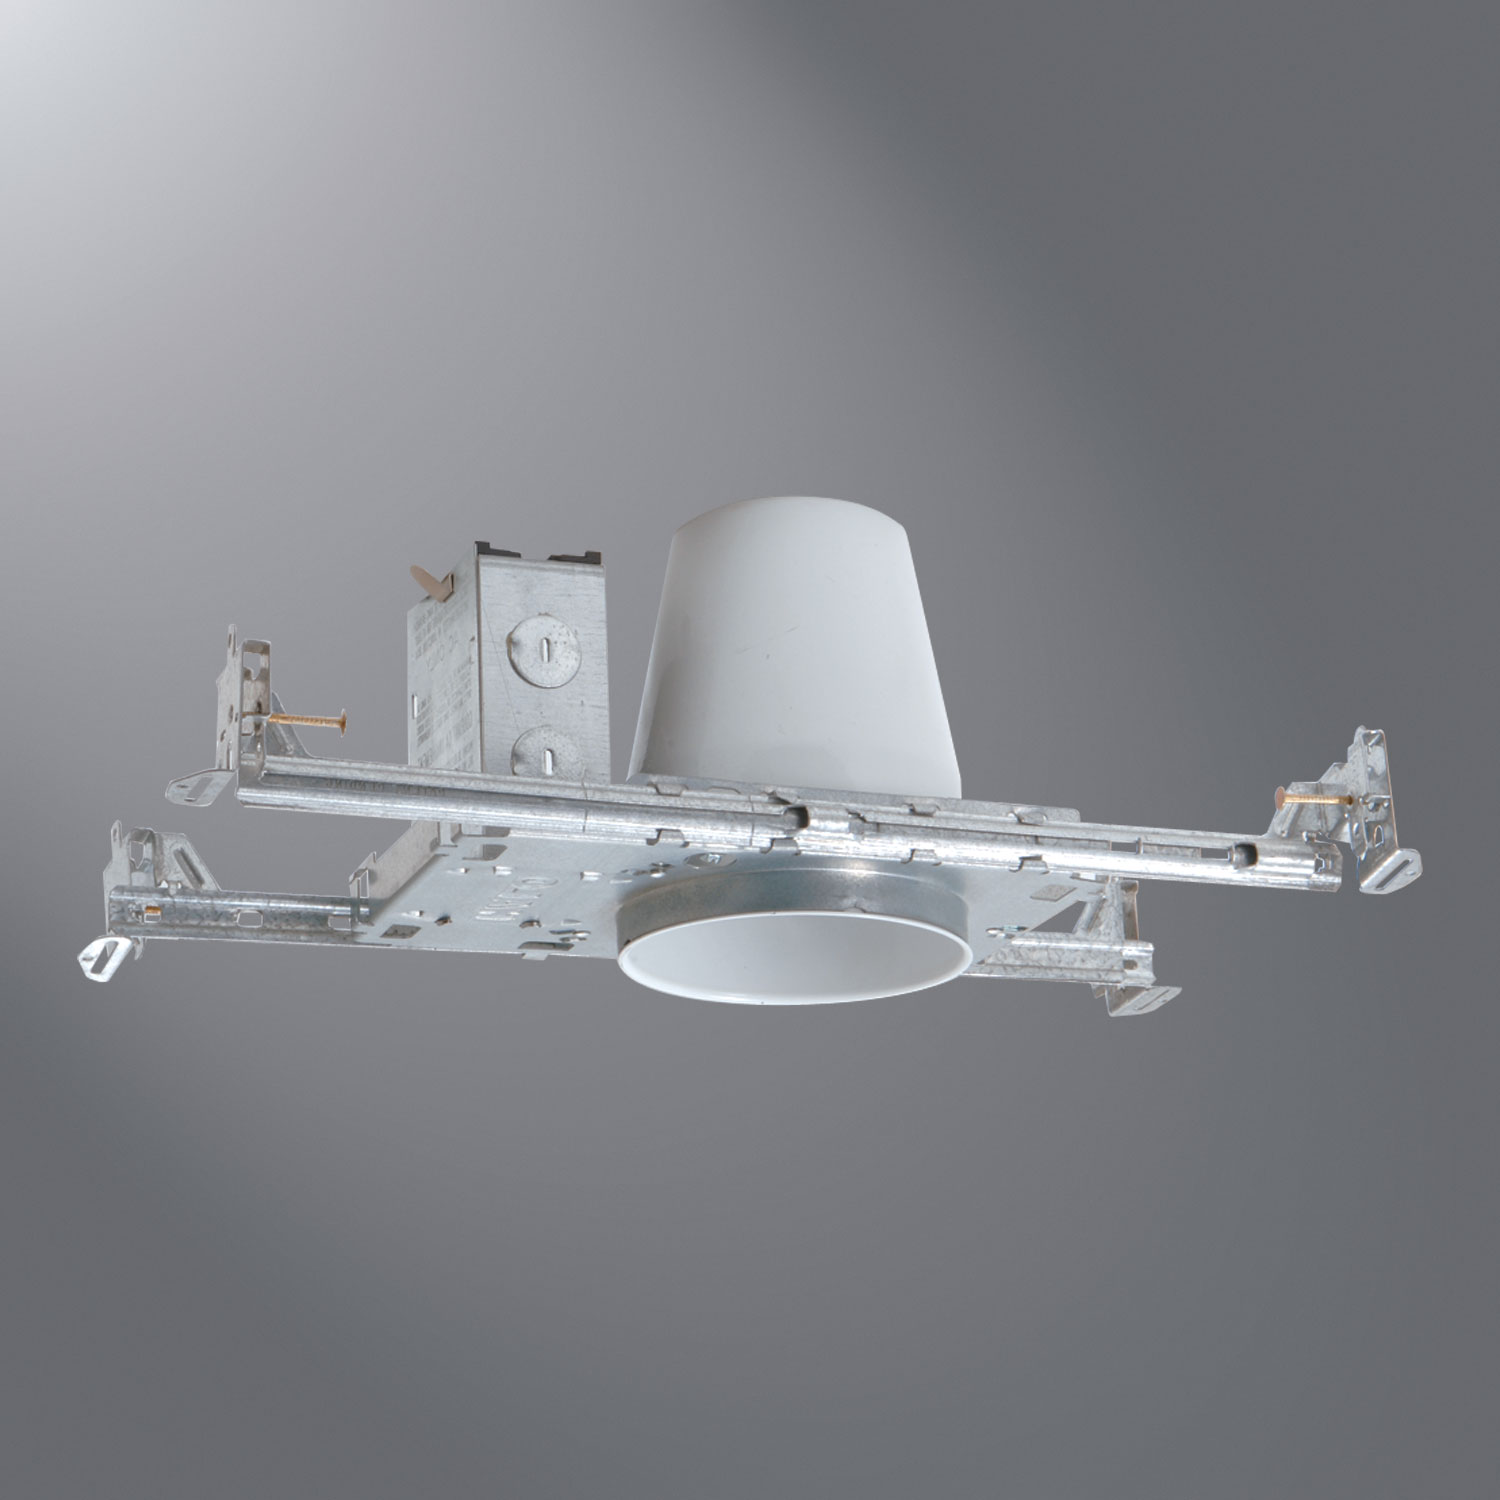 h99tat 4 inch nonic airtite new housing by halo h99tat - Halo Recessed Lighting